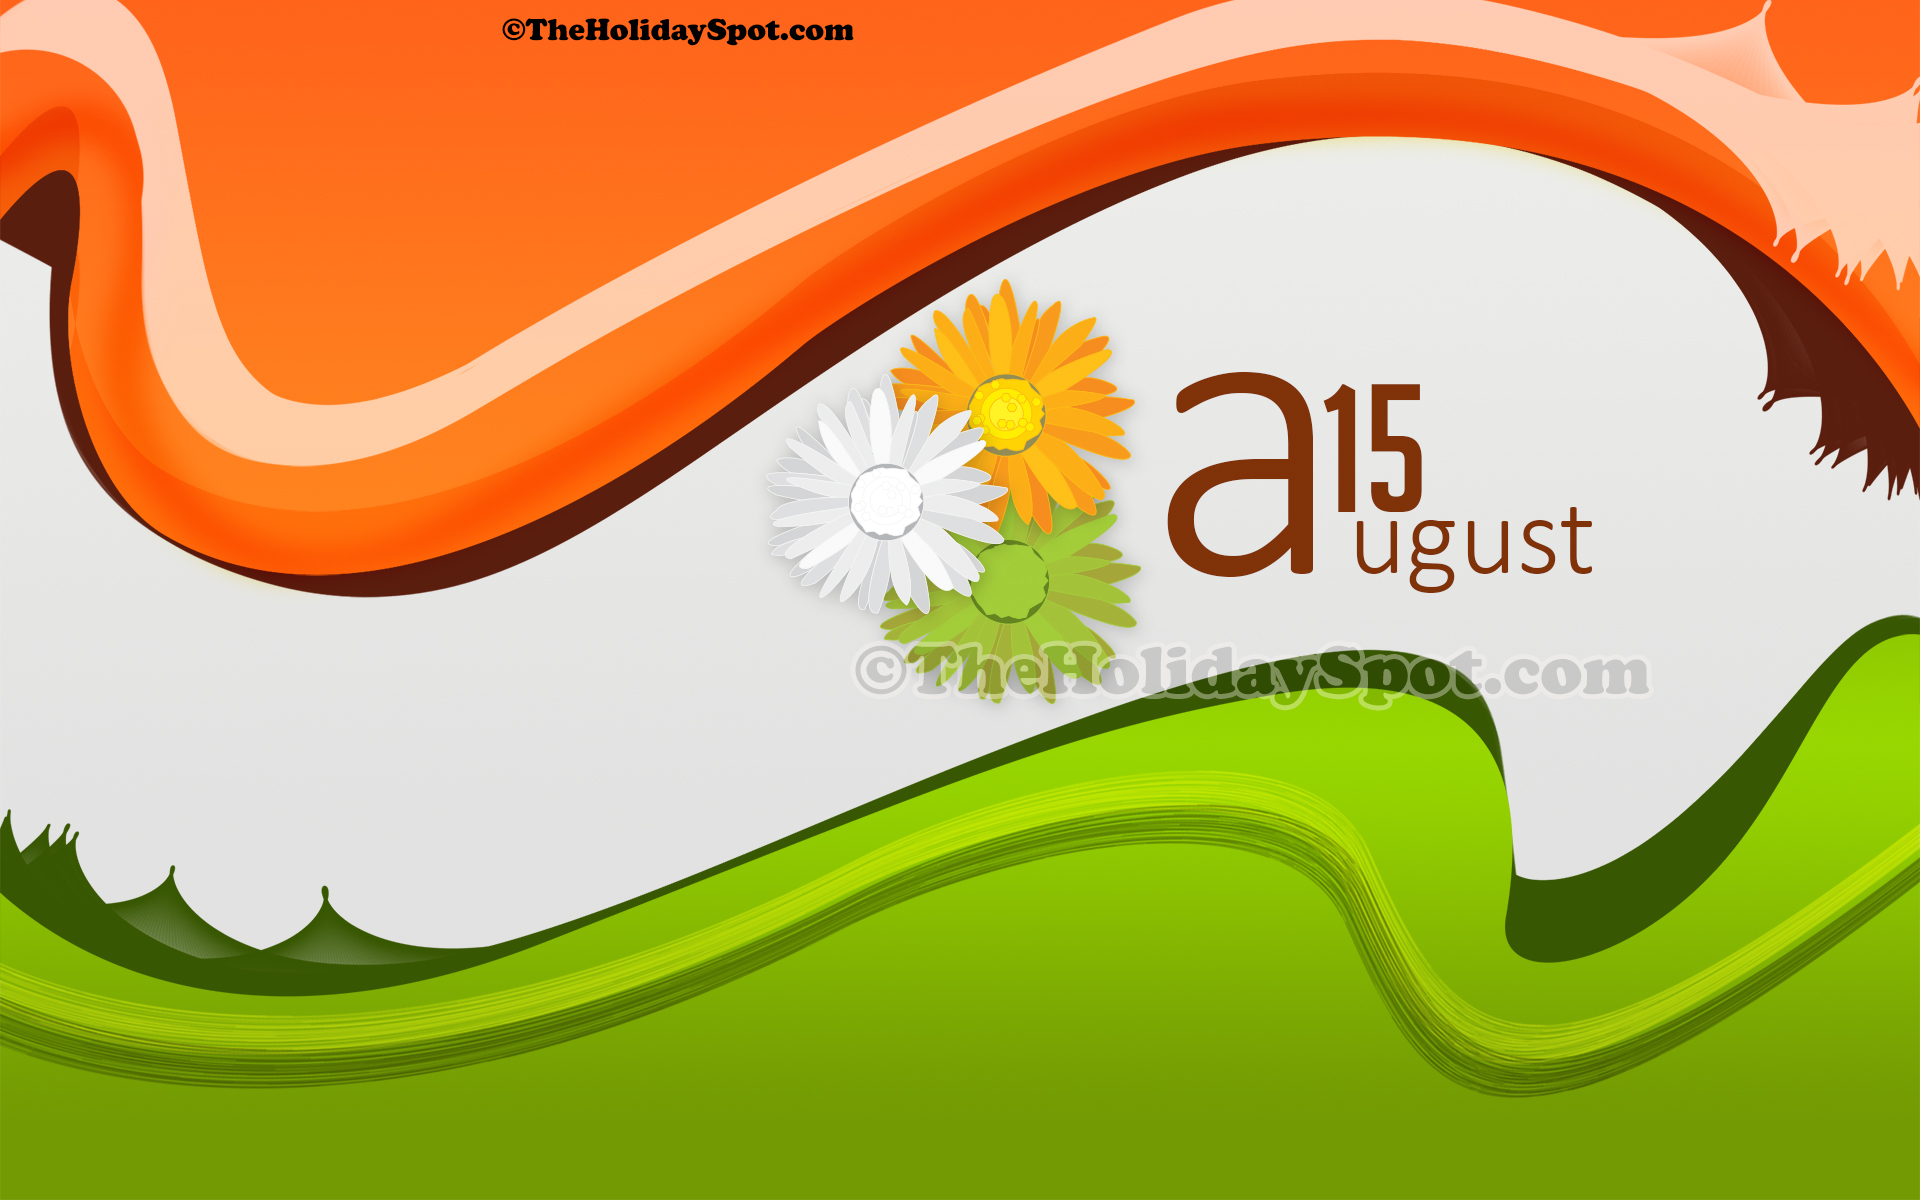 A High Quality Illustration Based On Theme Of Indian - Independence Day 2018 Theme , HD Wallpaper & Backgrounds